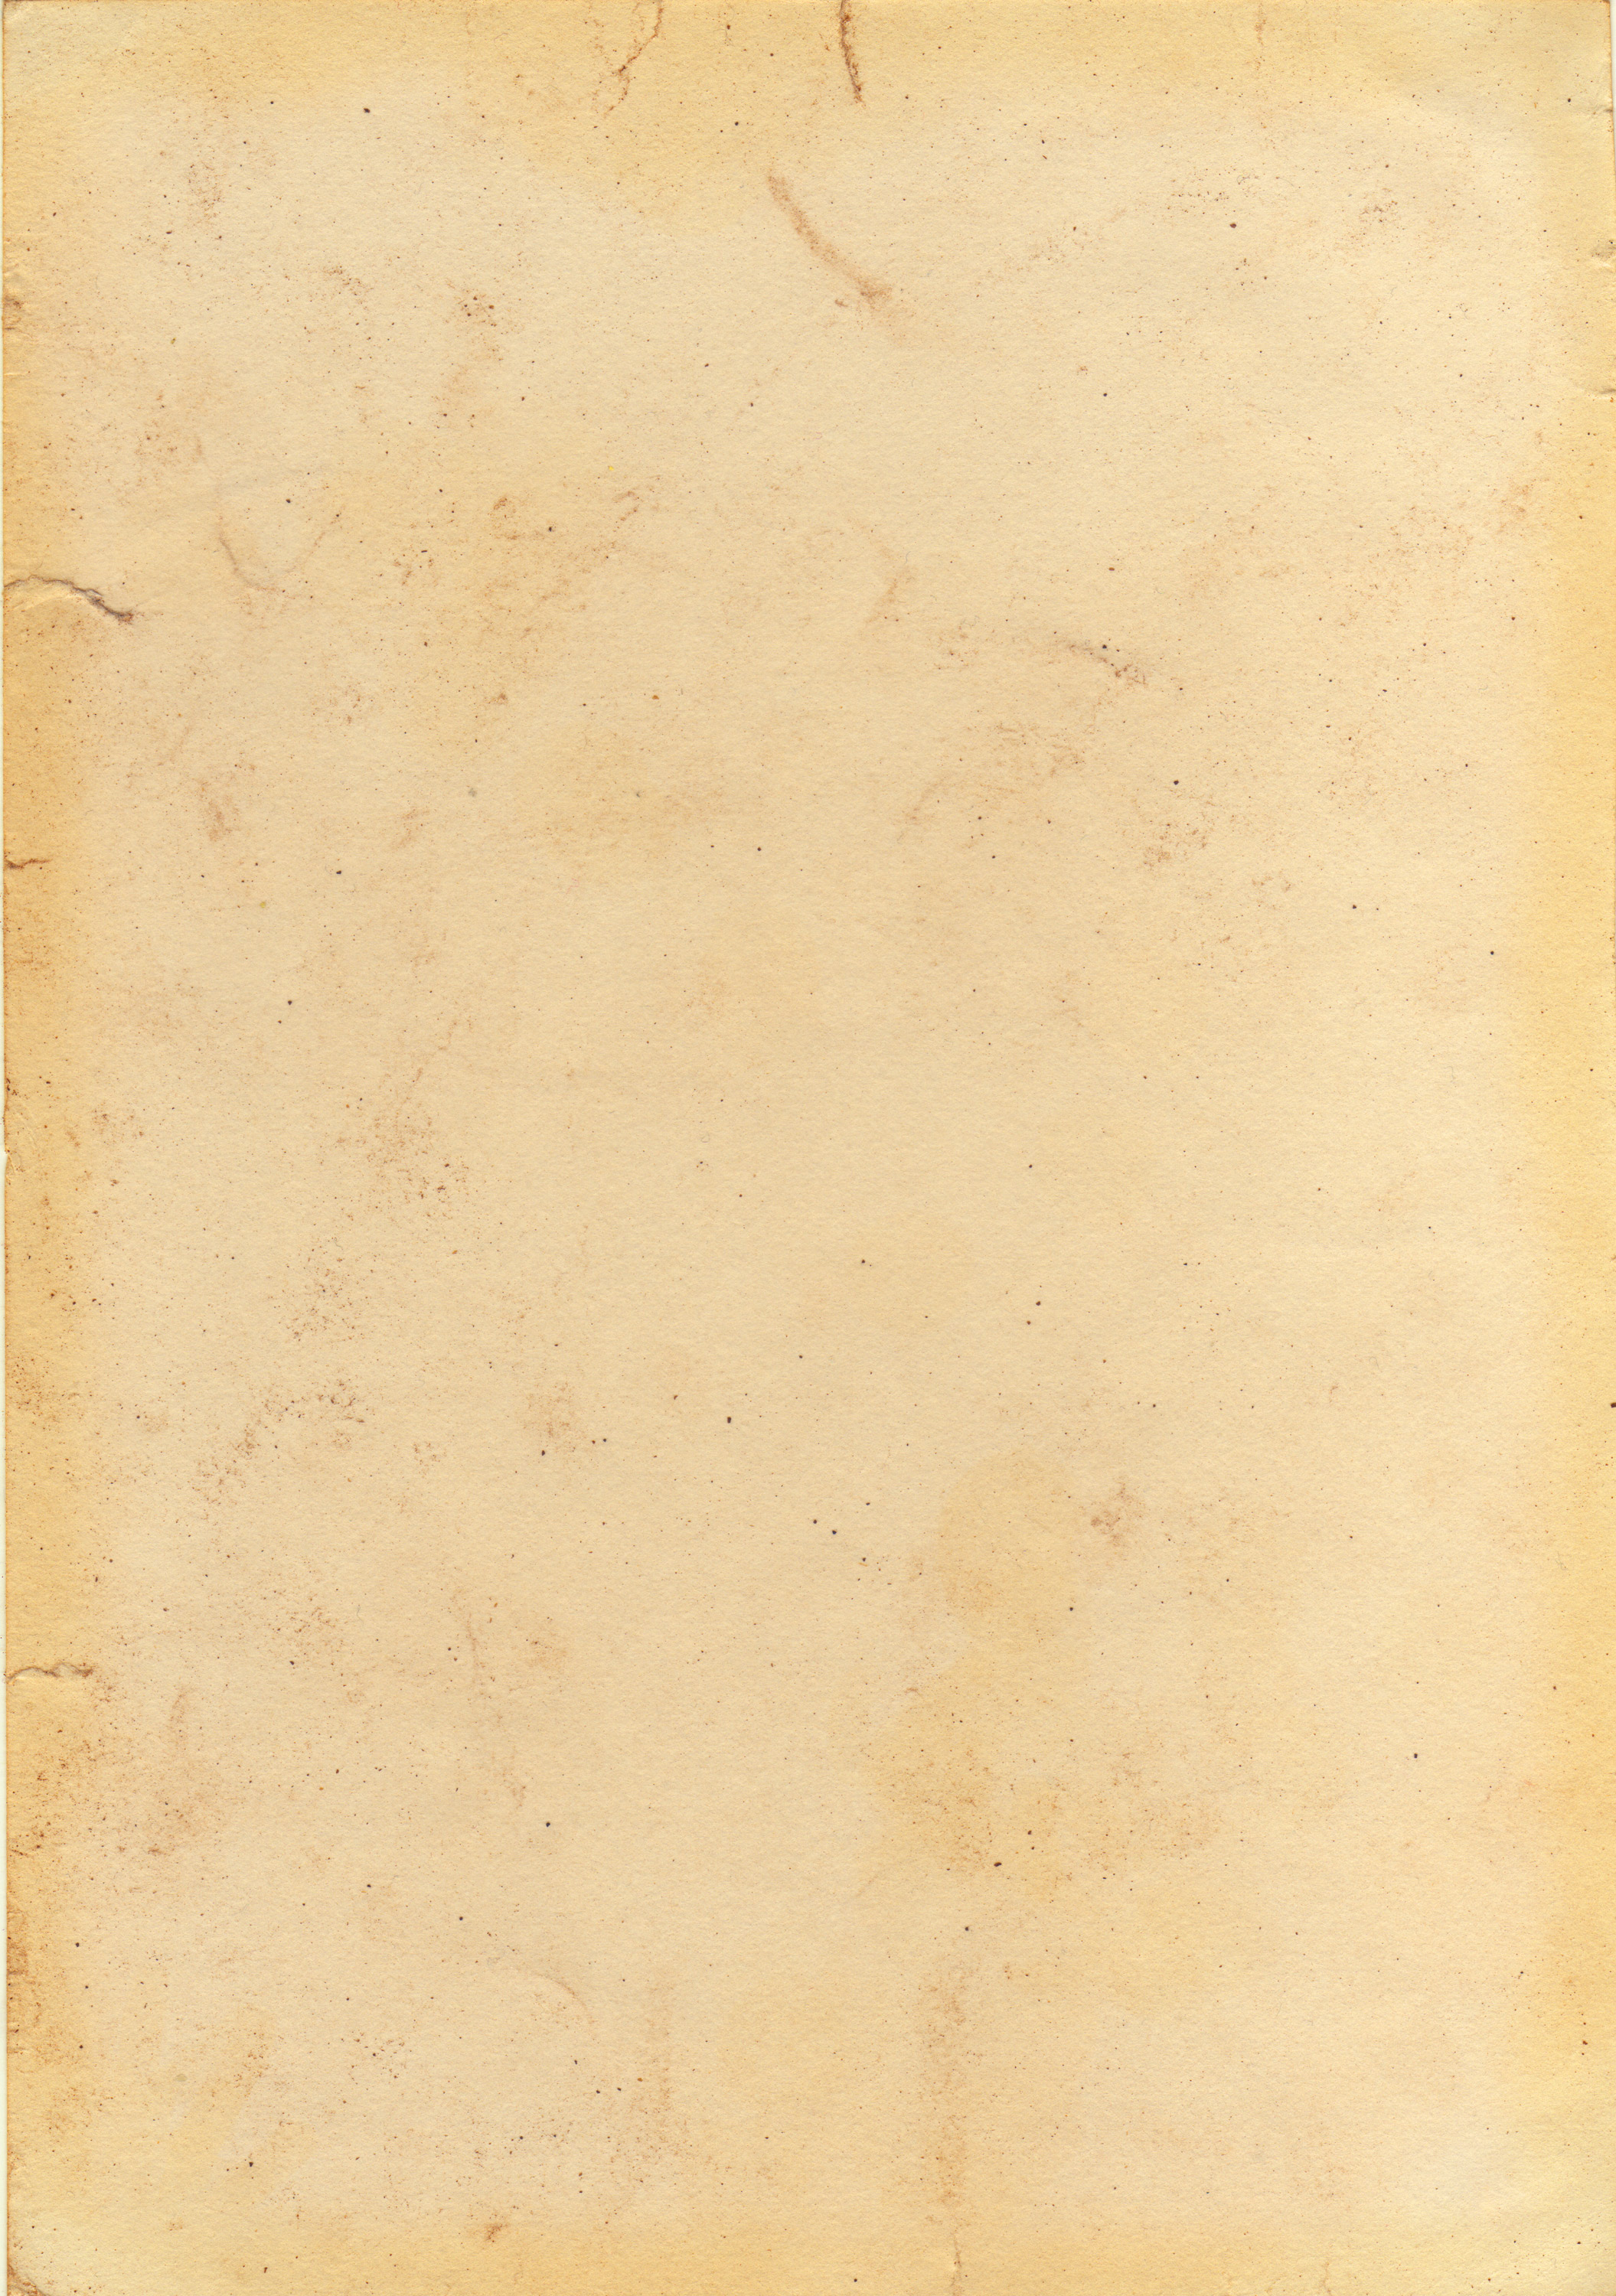 Old Scroll Texture III by Esther-Sanz on DeviantArt